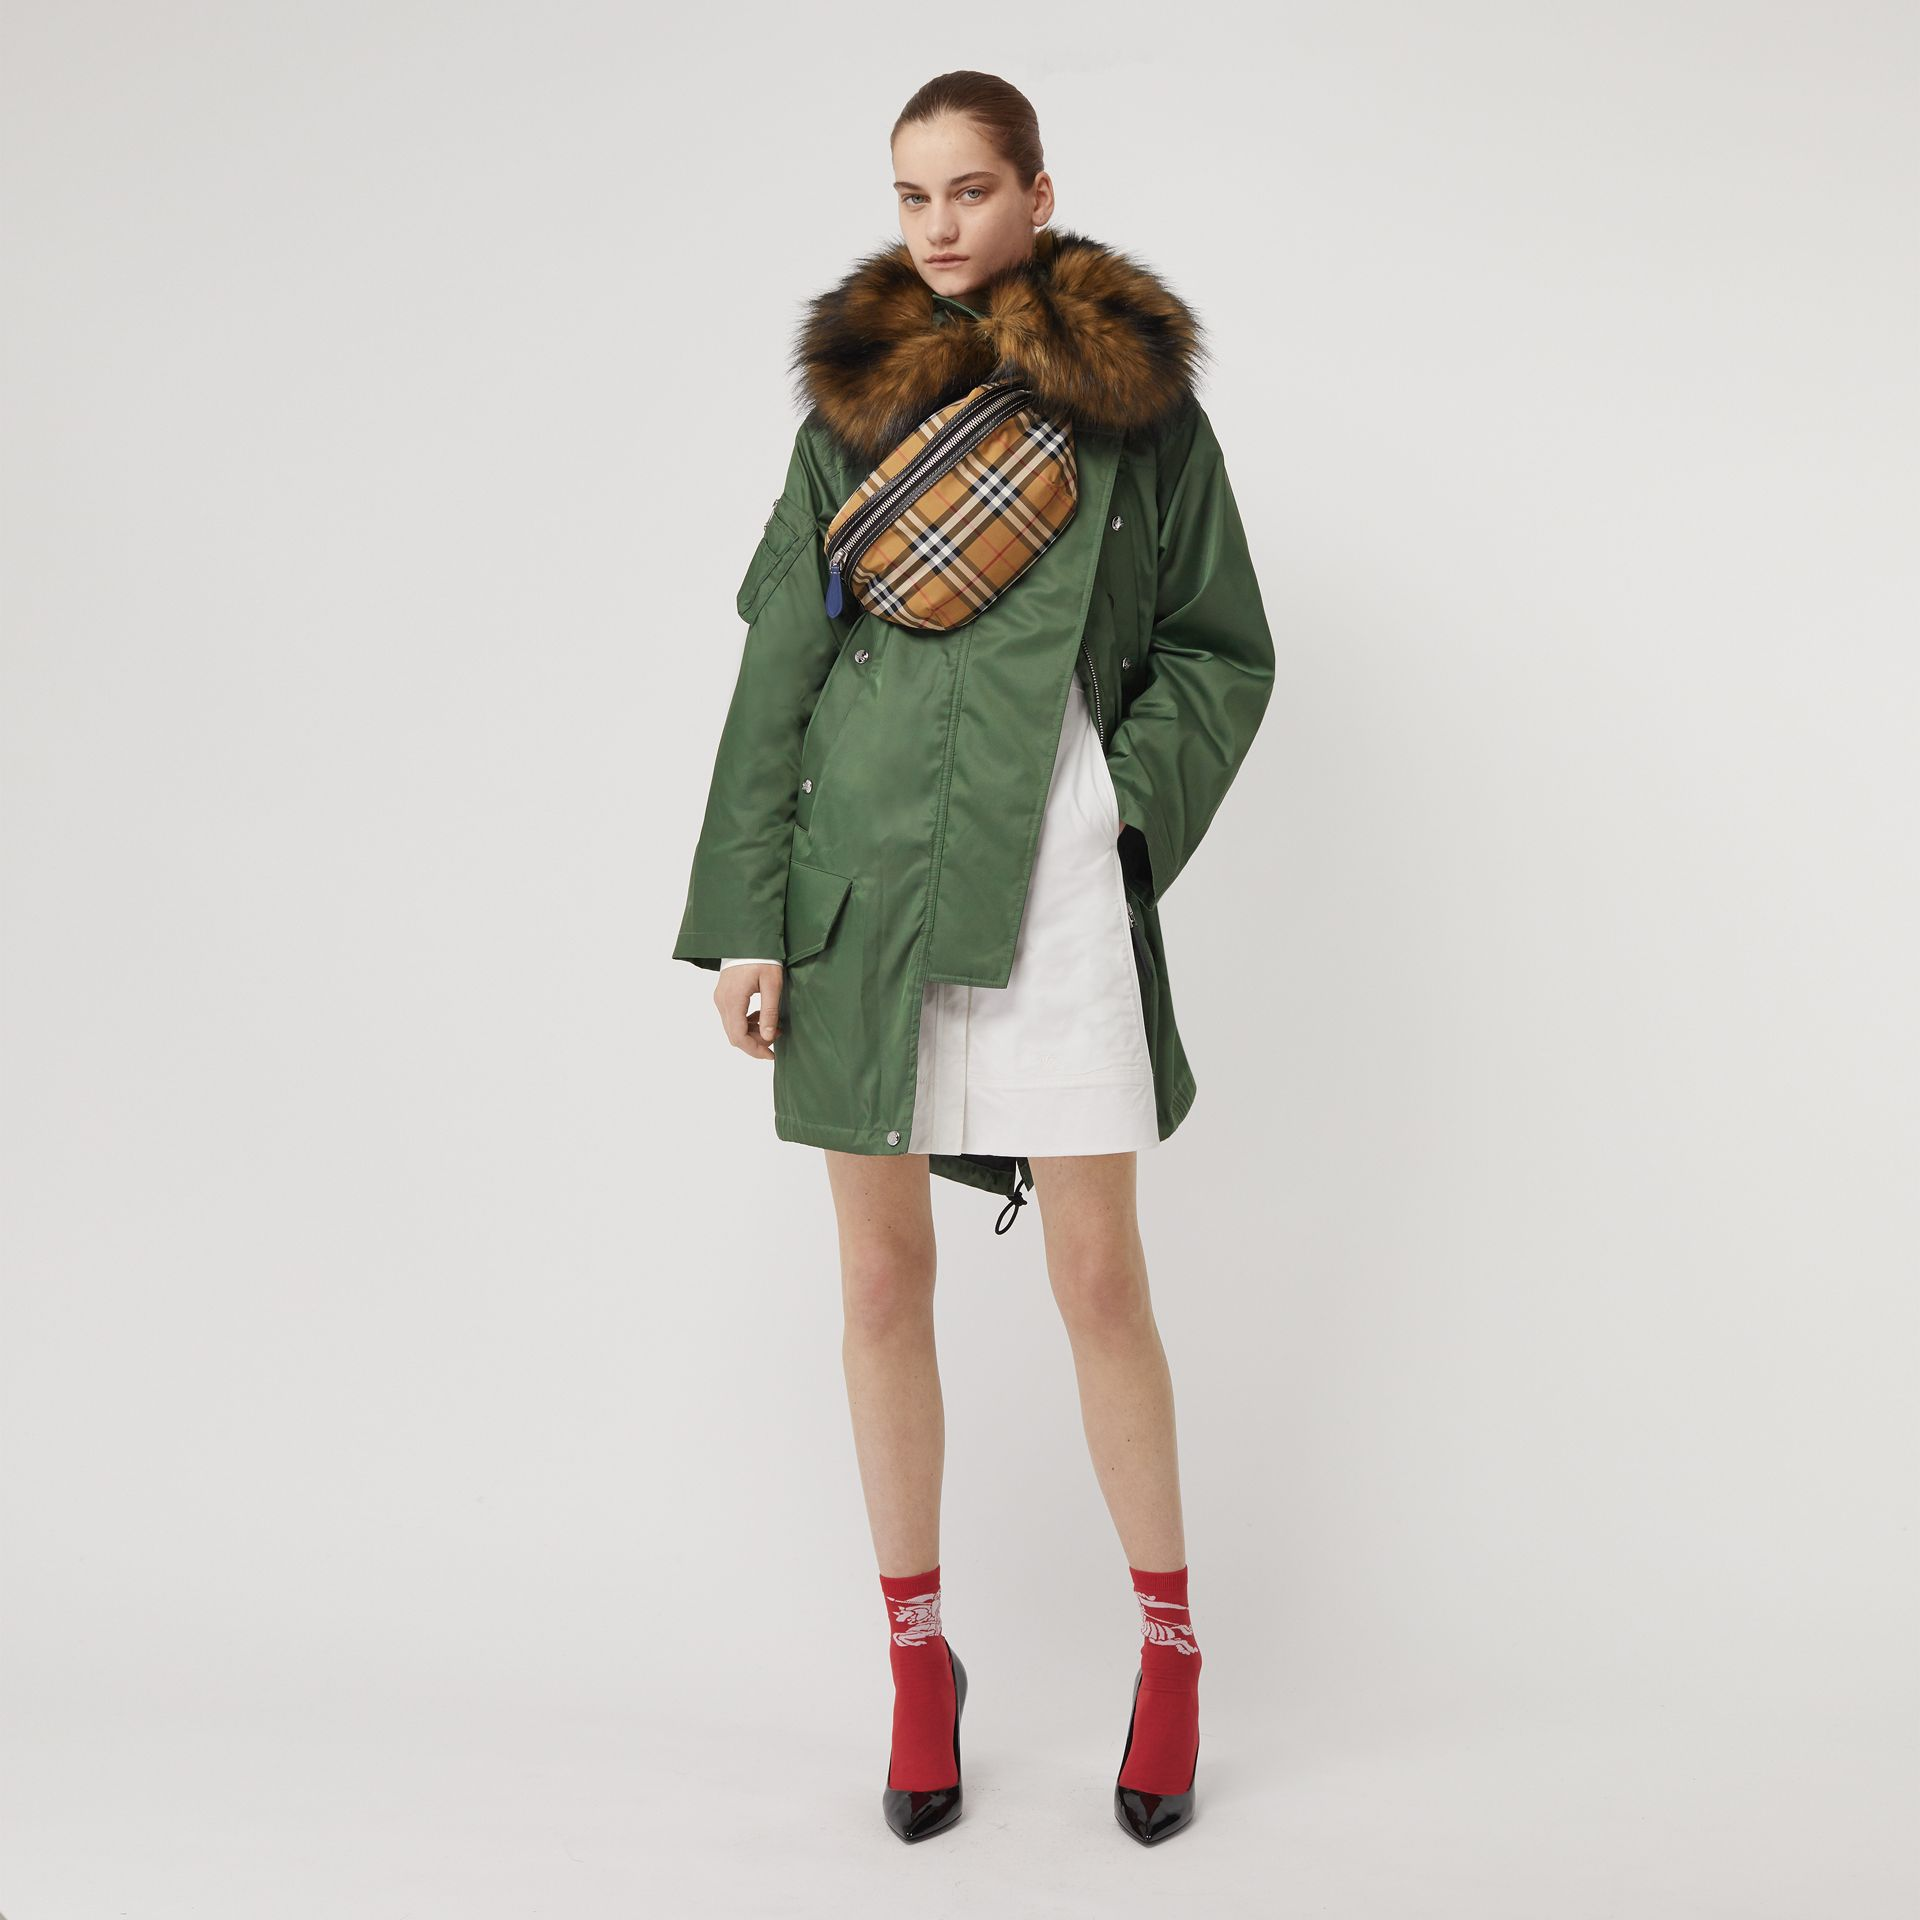 Faux Fur Trim Parka with Detachable Warmer in Grass Green - Women | Burberry United States - gallery image 0